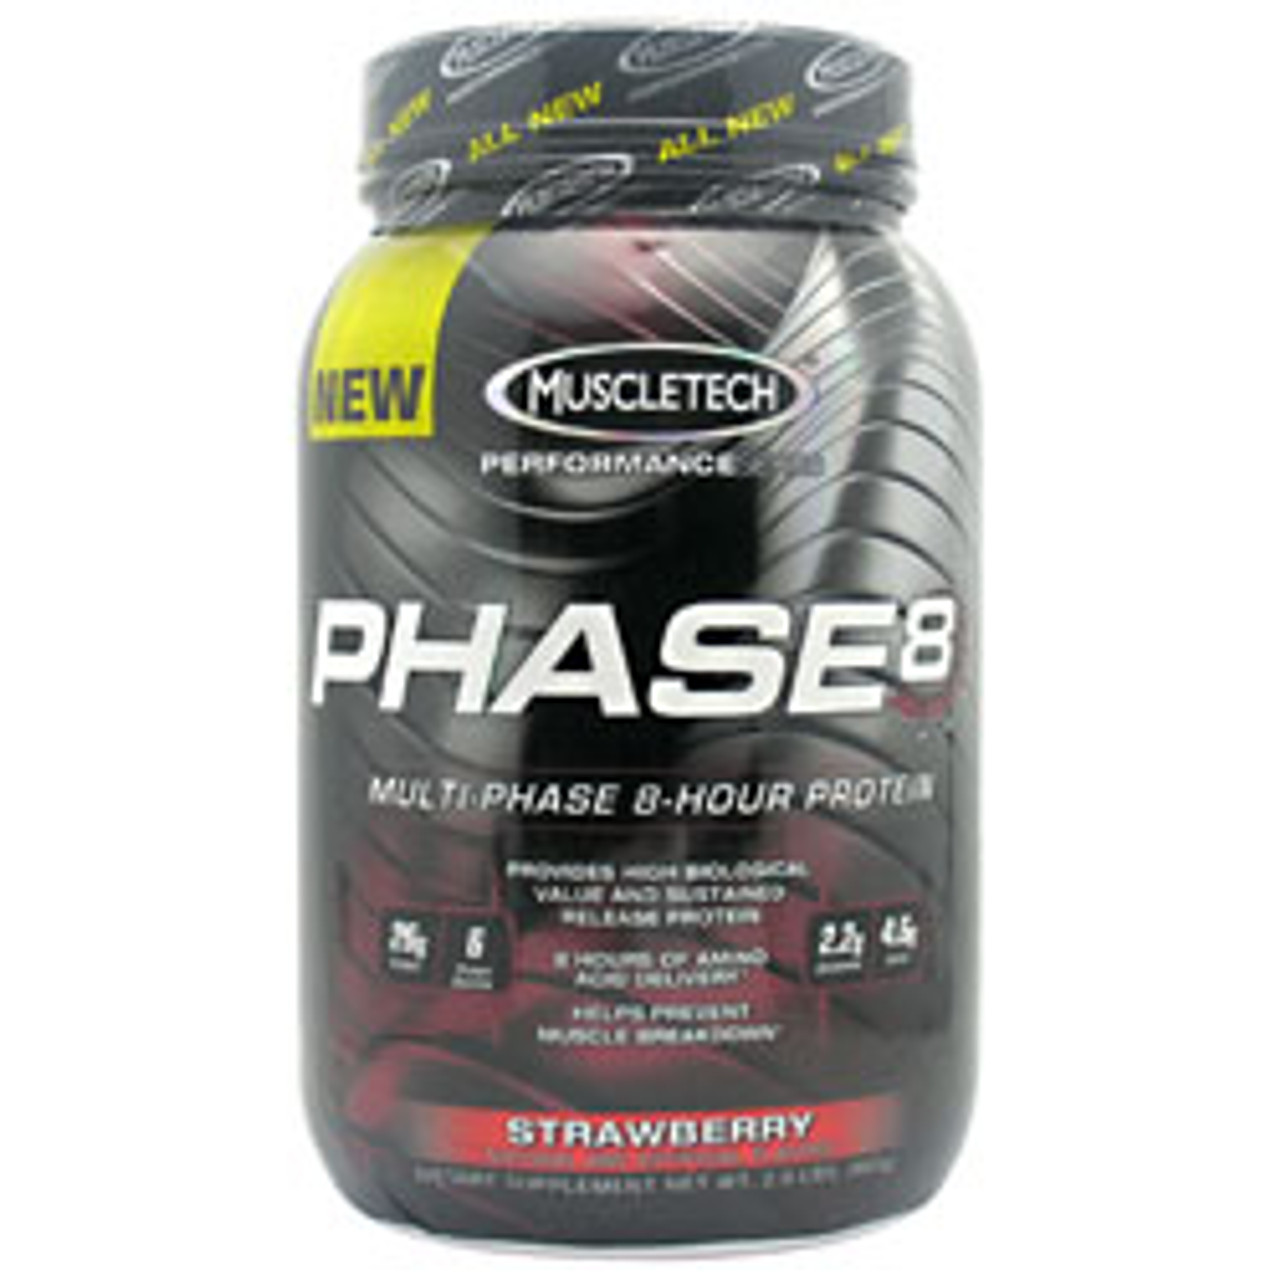 Phase 8 Multi Phase by Muscletech 2lb